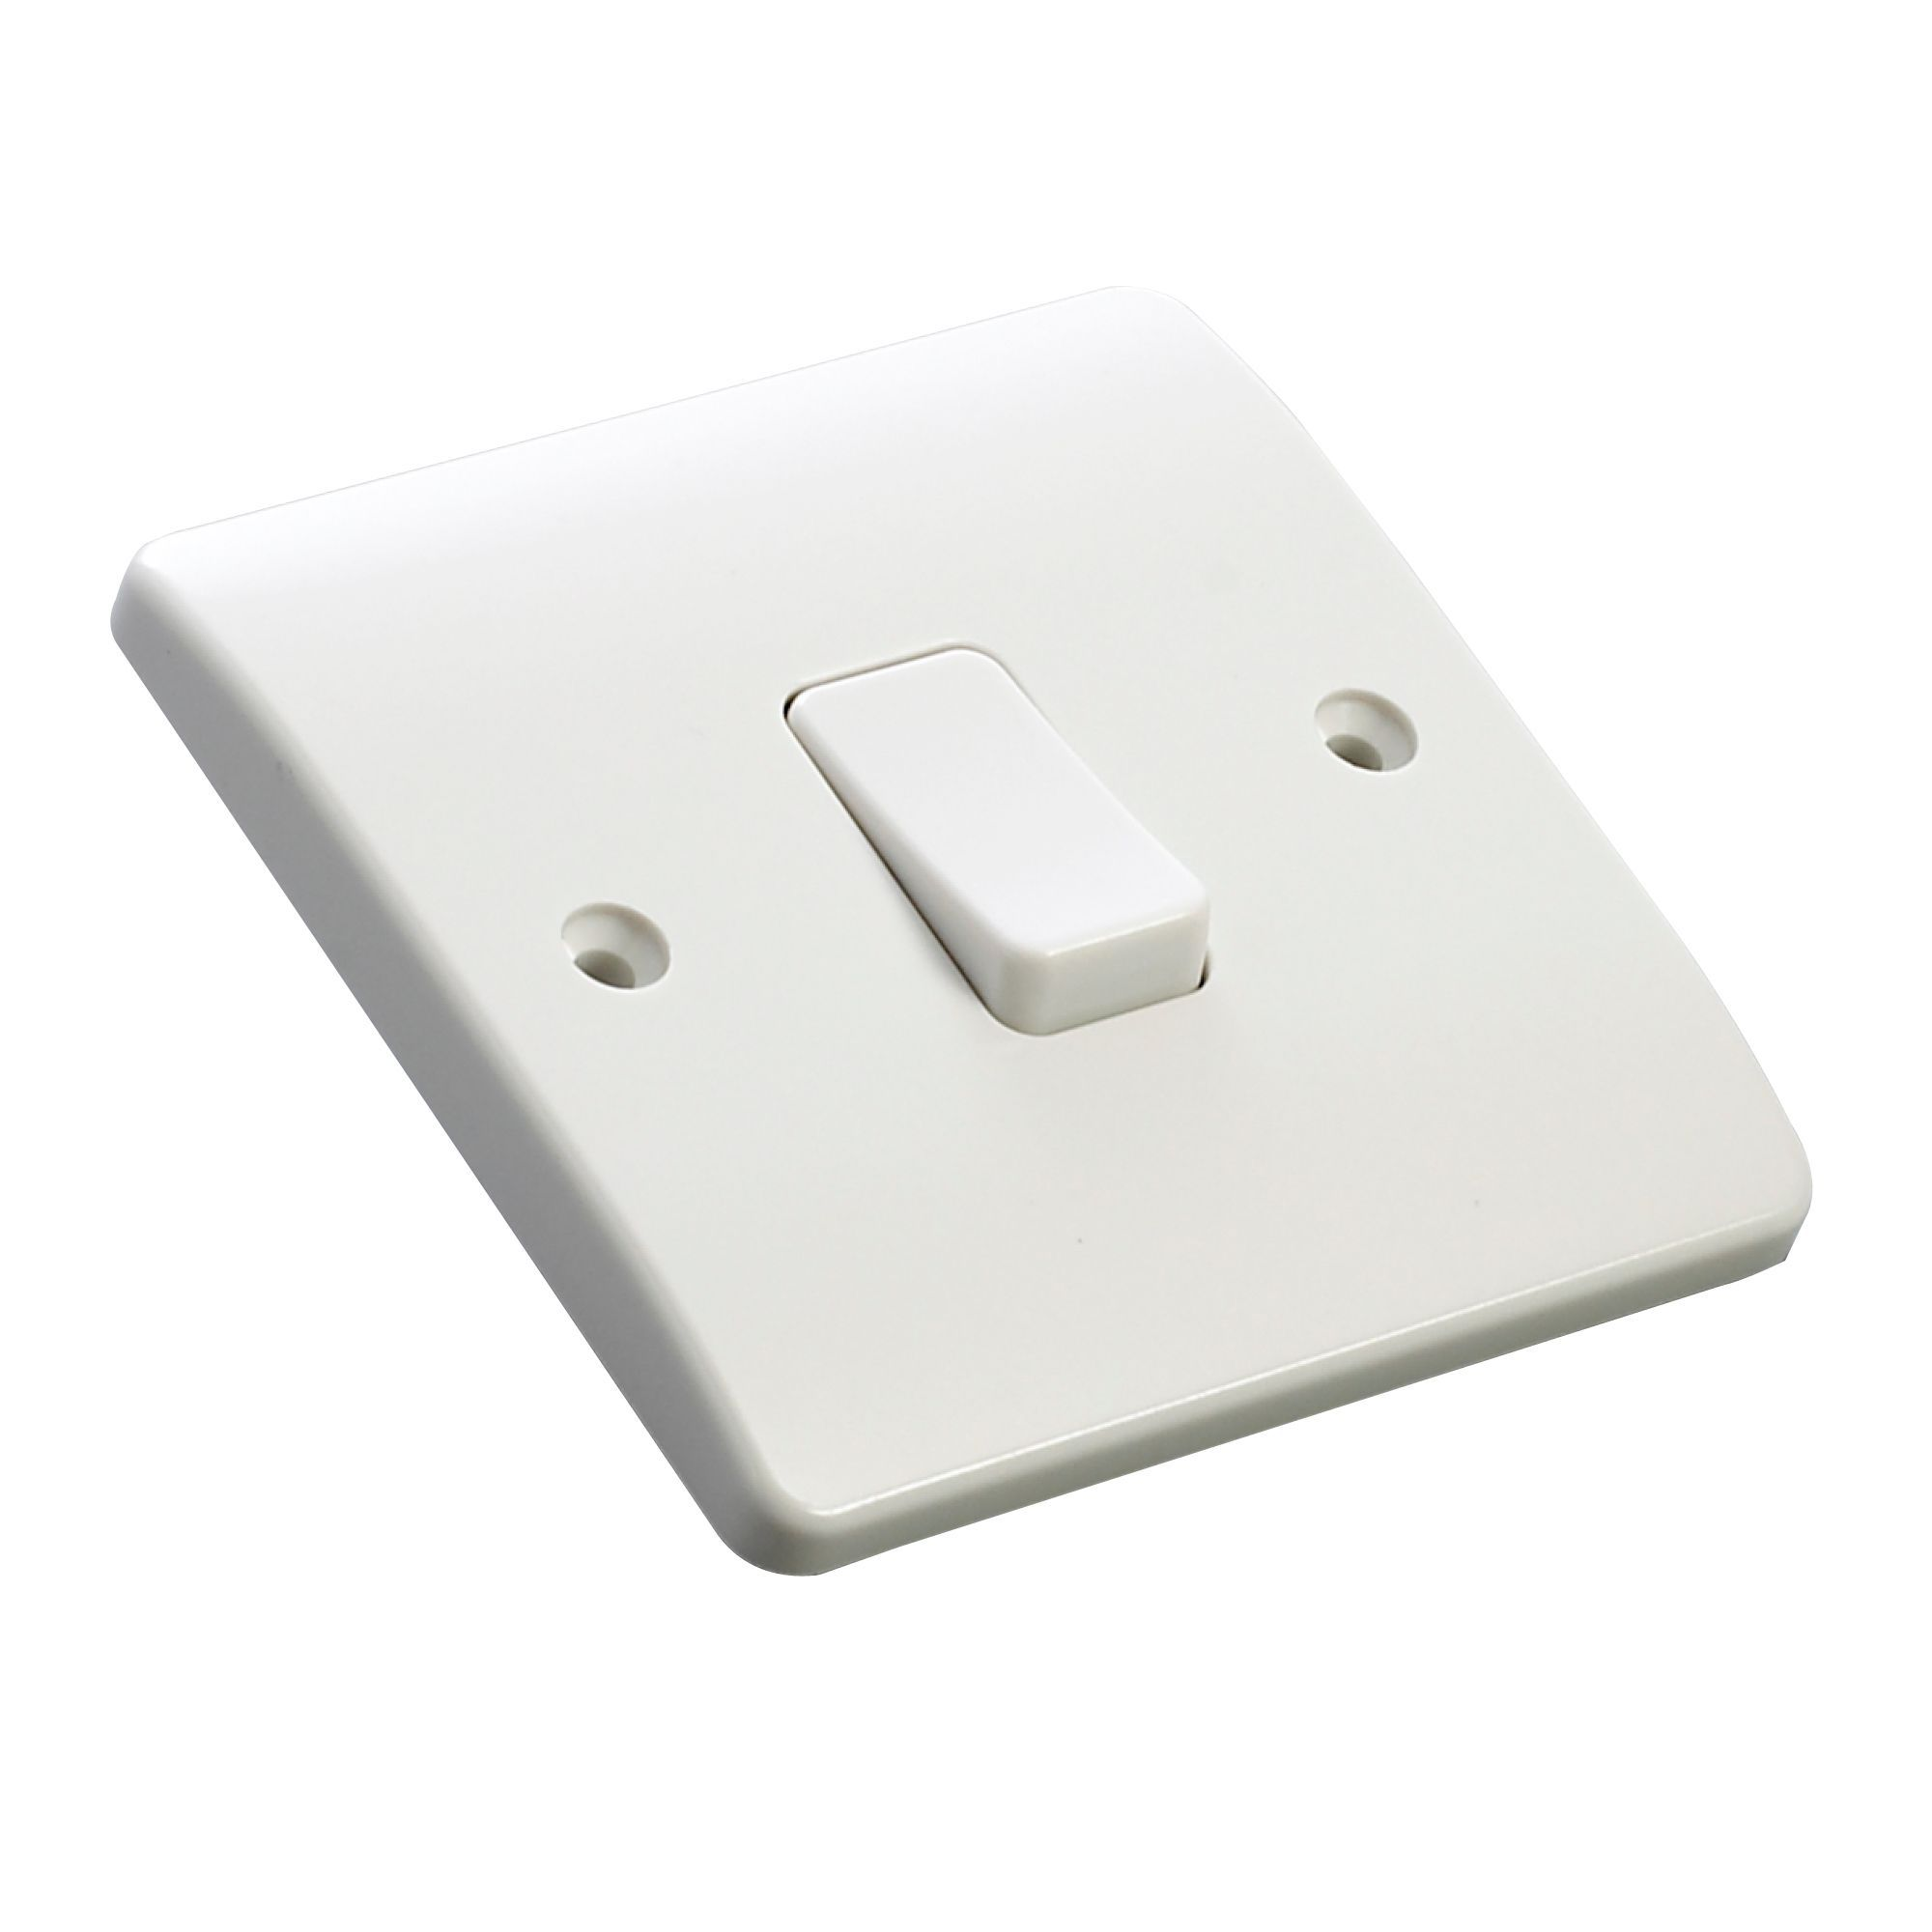 MK 10A 2-Way Single White Gloss Intermediate Switch | Departments ...